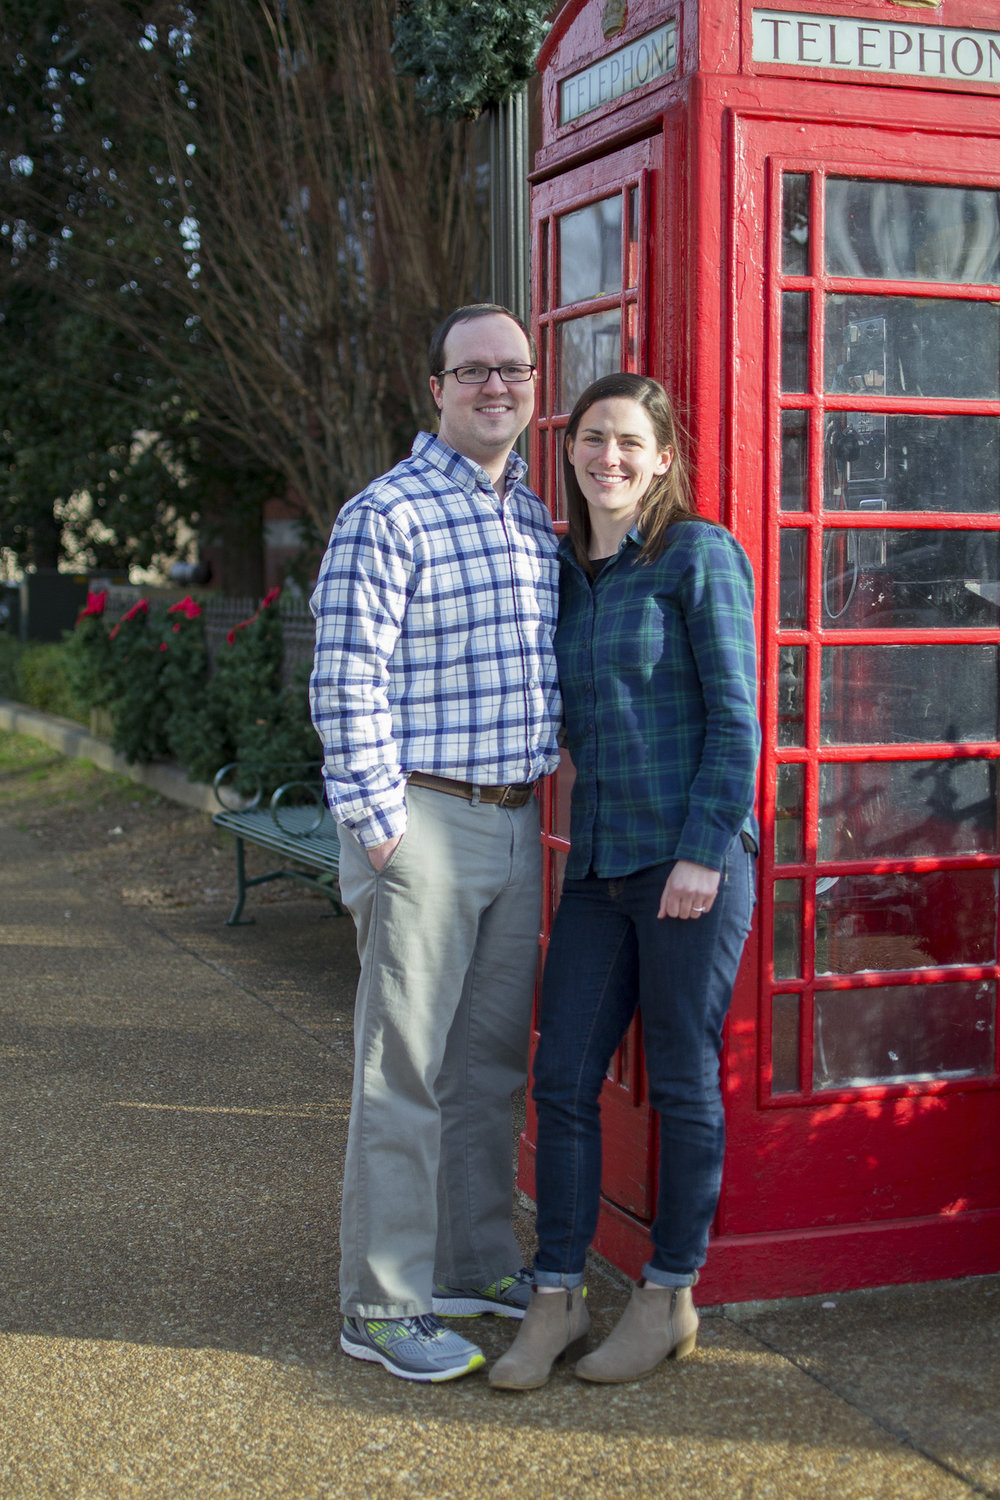 red telephone booth engagement photos.jpg